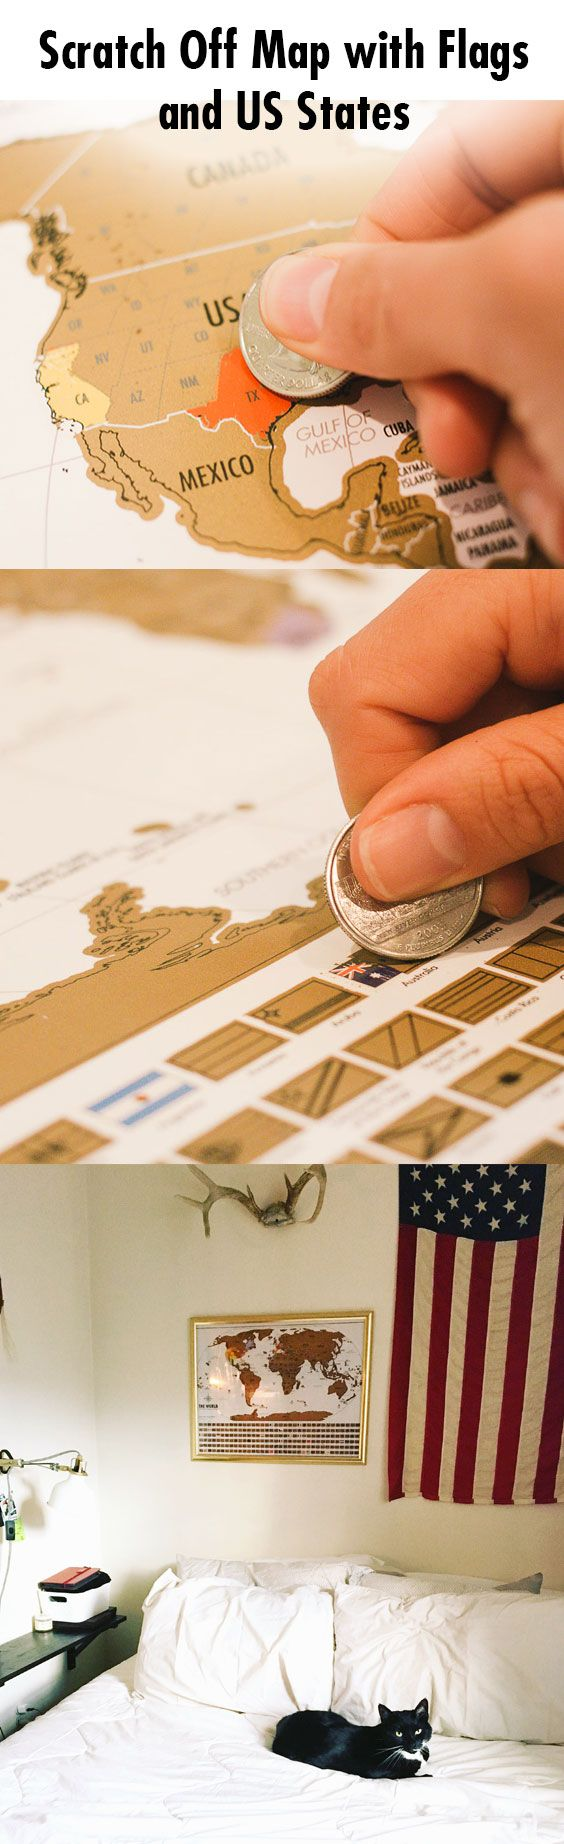 Best Wanderlust Images On Pinterest Travel Travel Hacks - Scratch off us state maps with pencil 25 pack